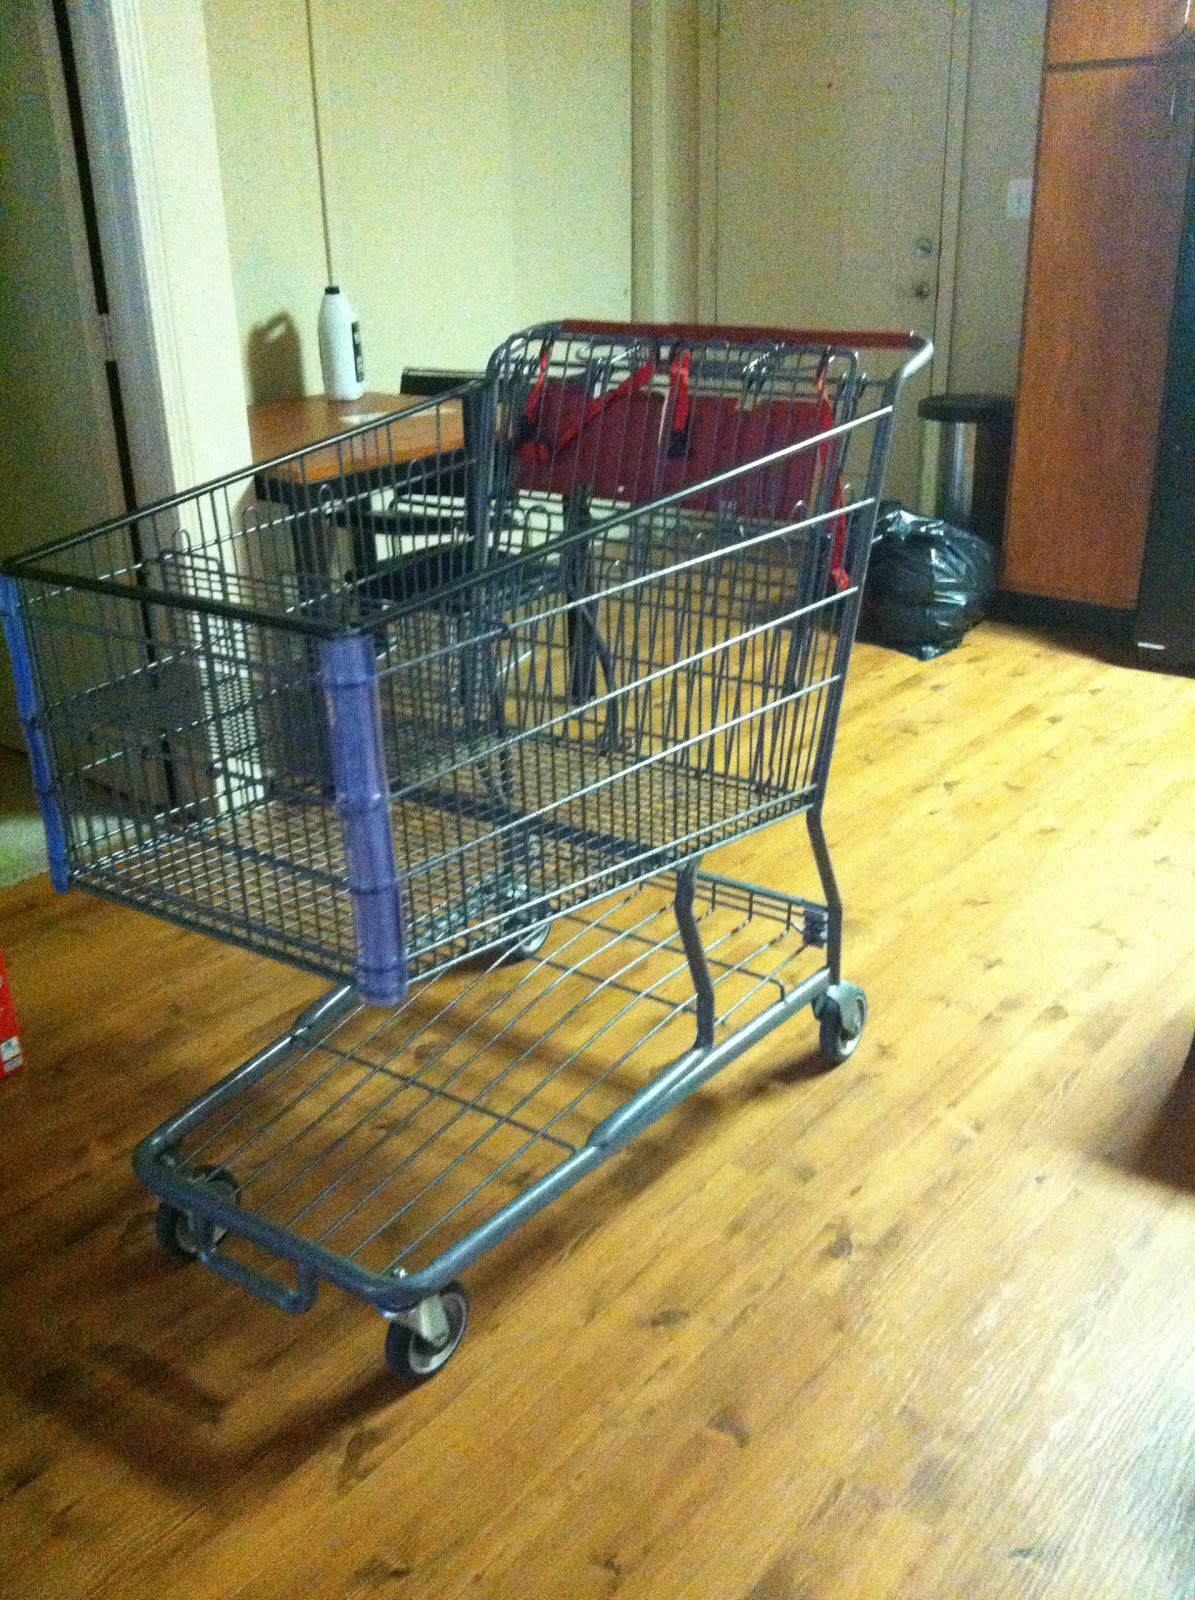 Today I Learned...: Shopping carts are incredibly efficient for moving.